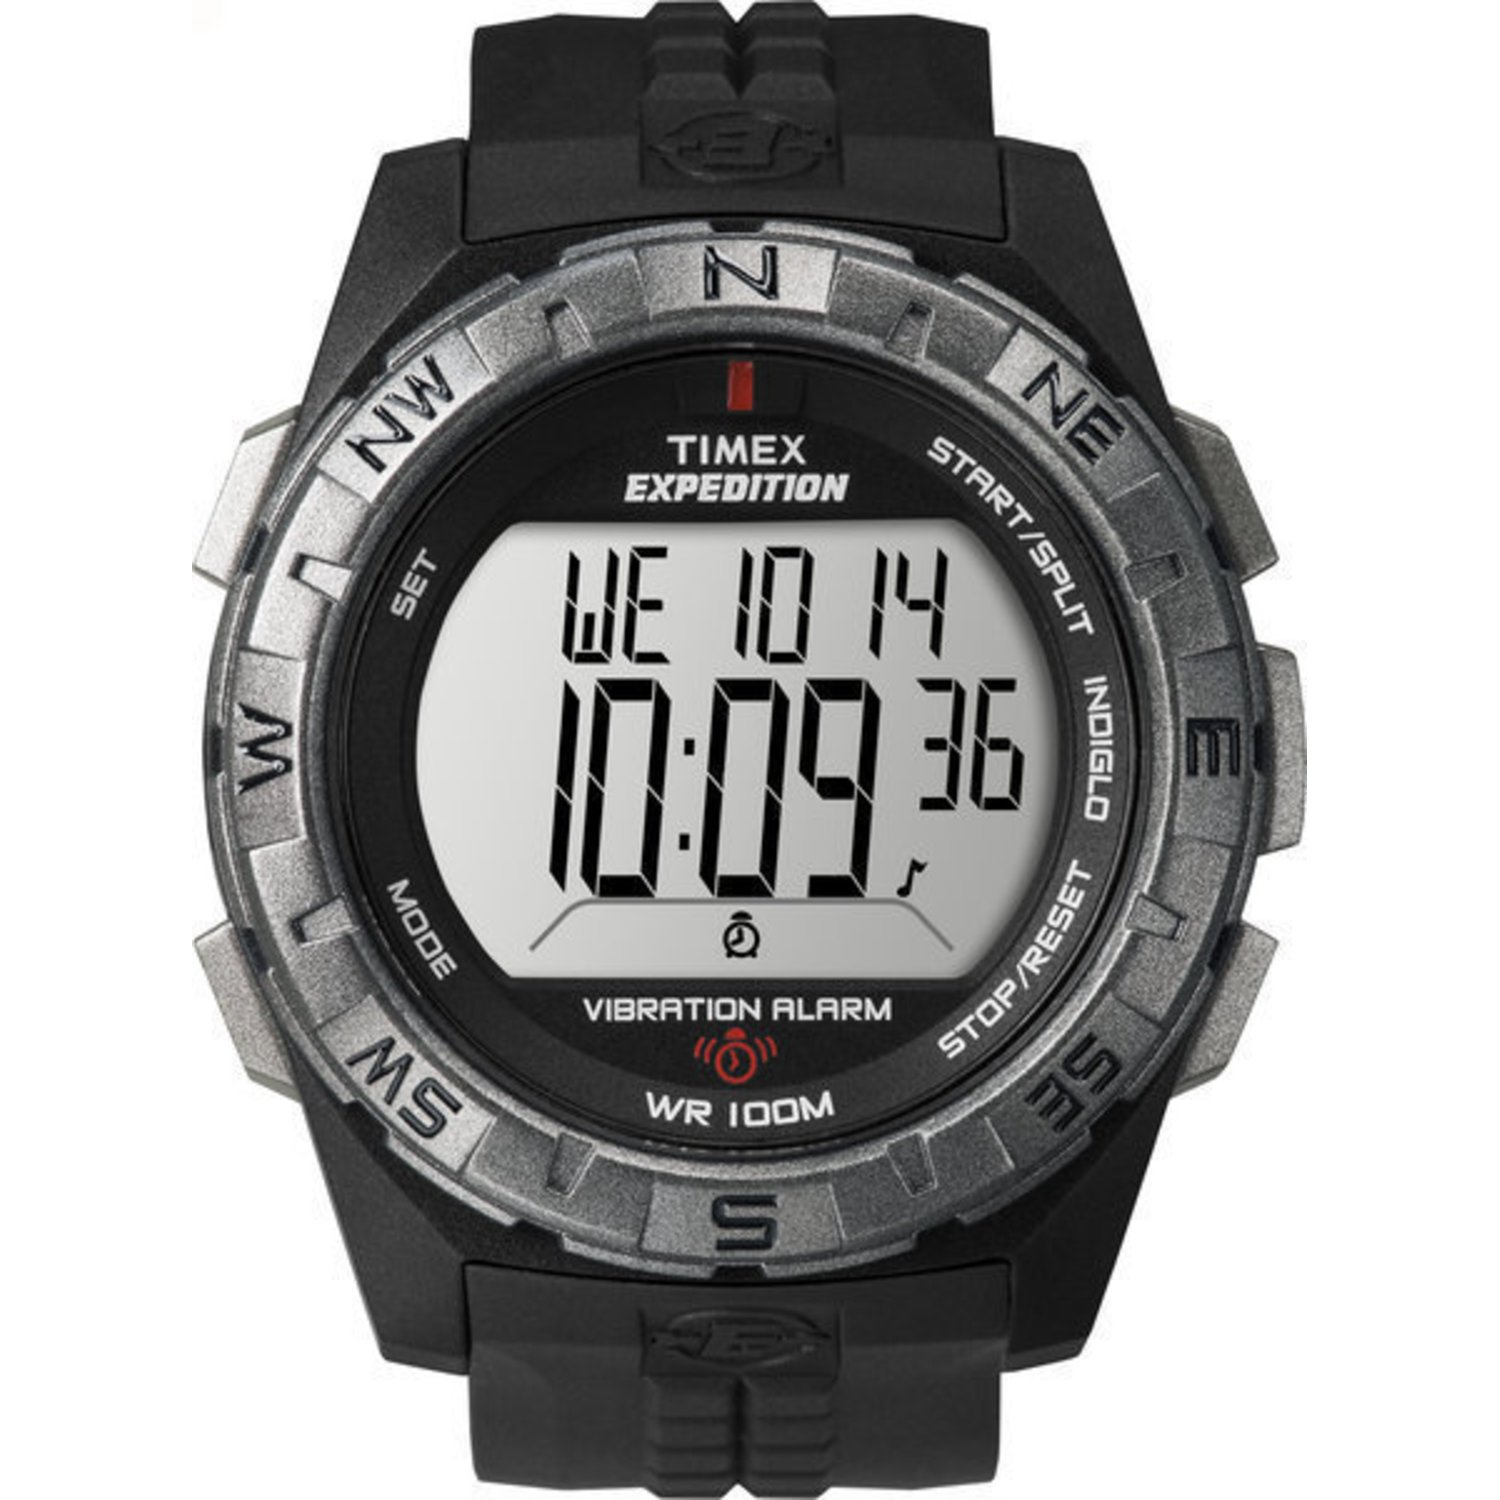 Timex T49851 Expedition Vibration Alarm